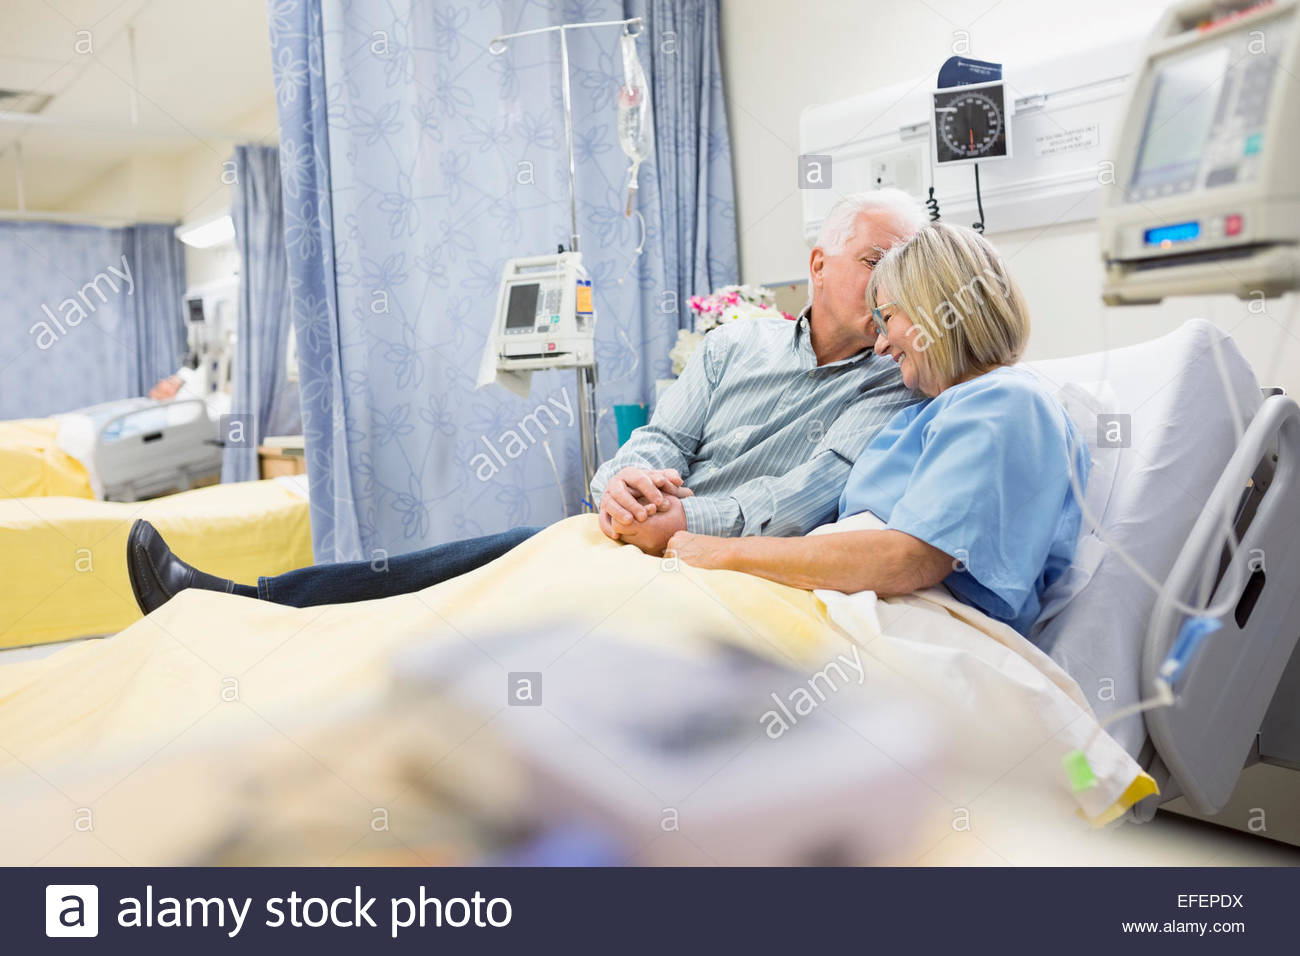 Husband comforting wife in hospital bed - Stock Image